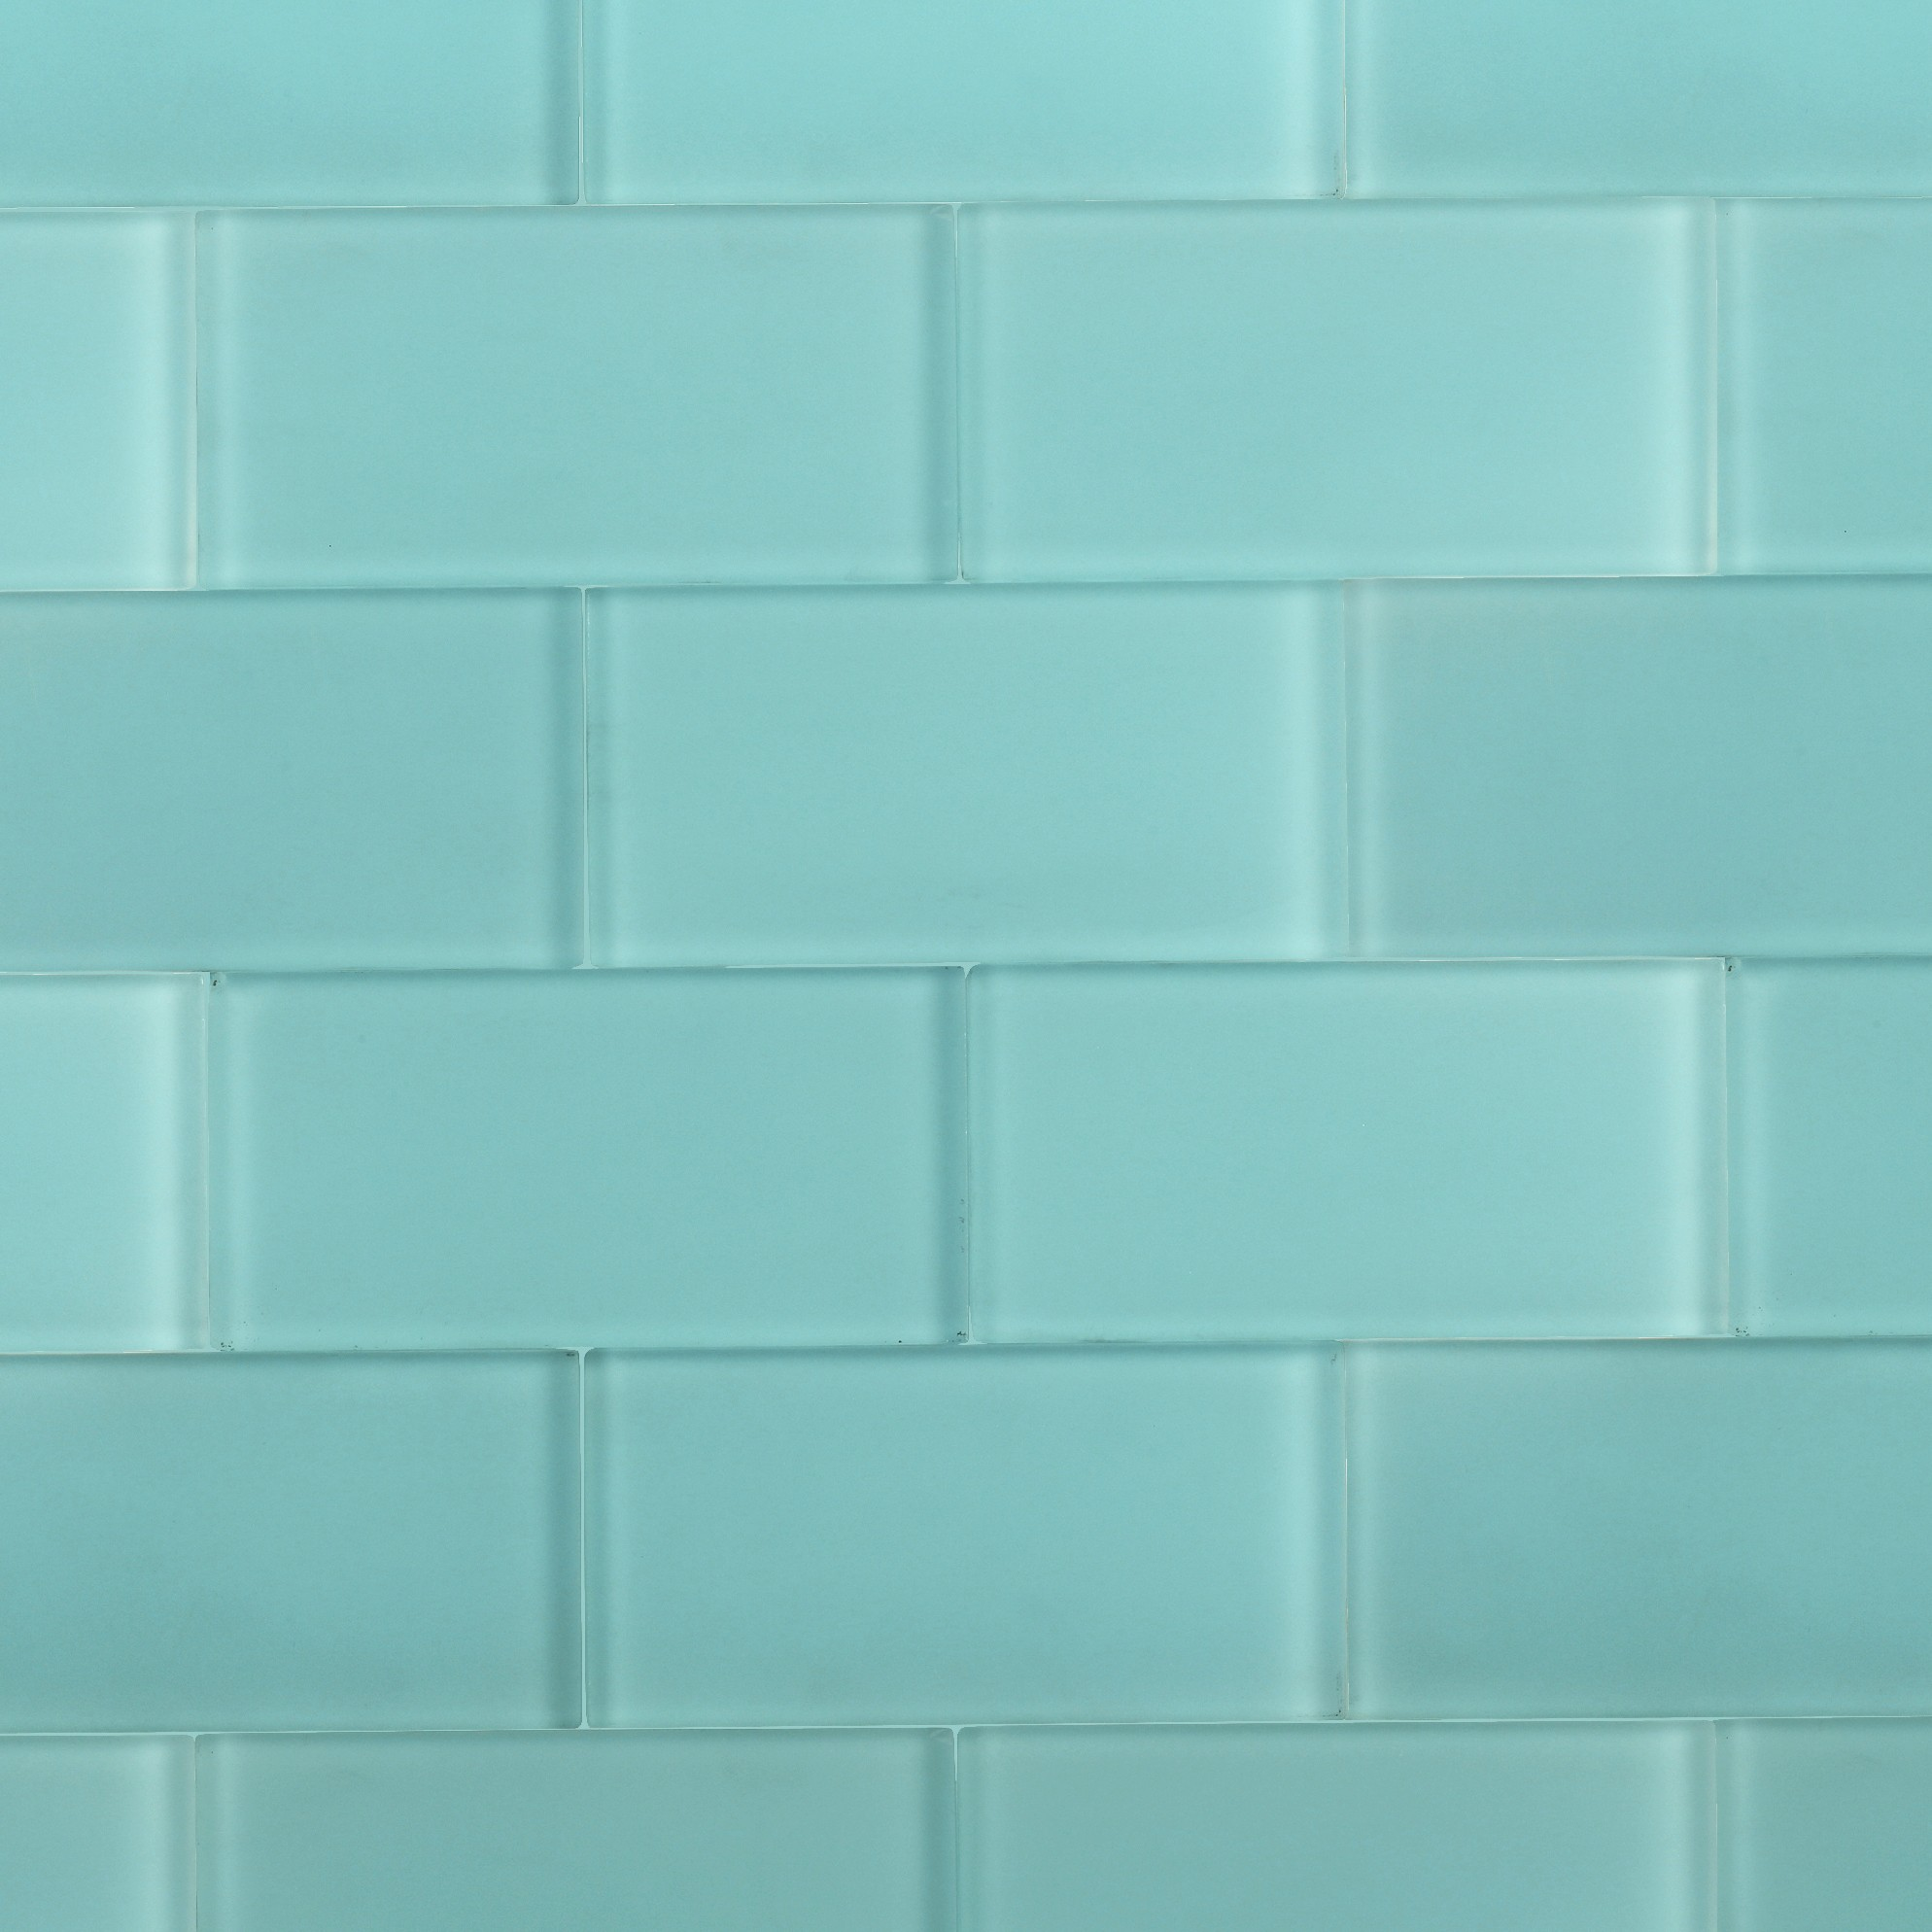 shop for loft turquoise frosted 3 x 6 glass tiles at